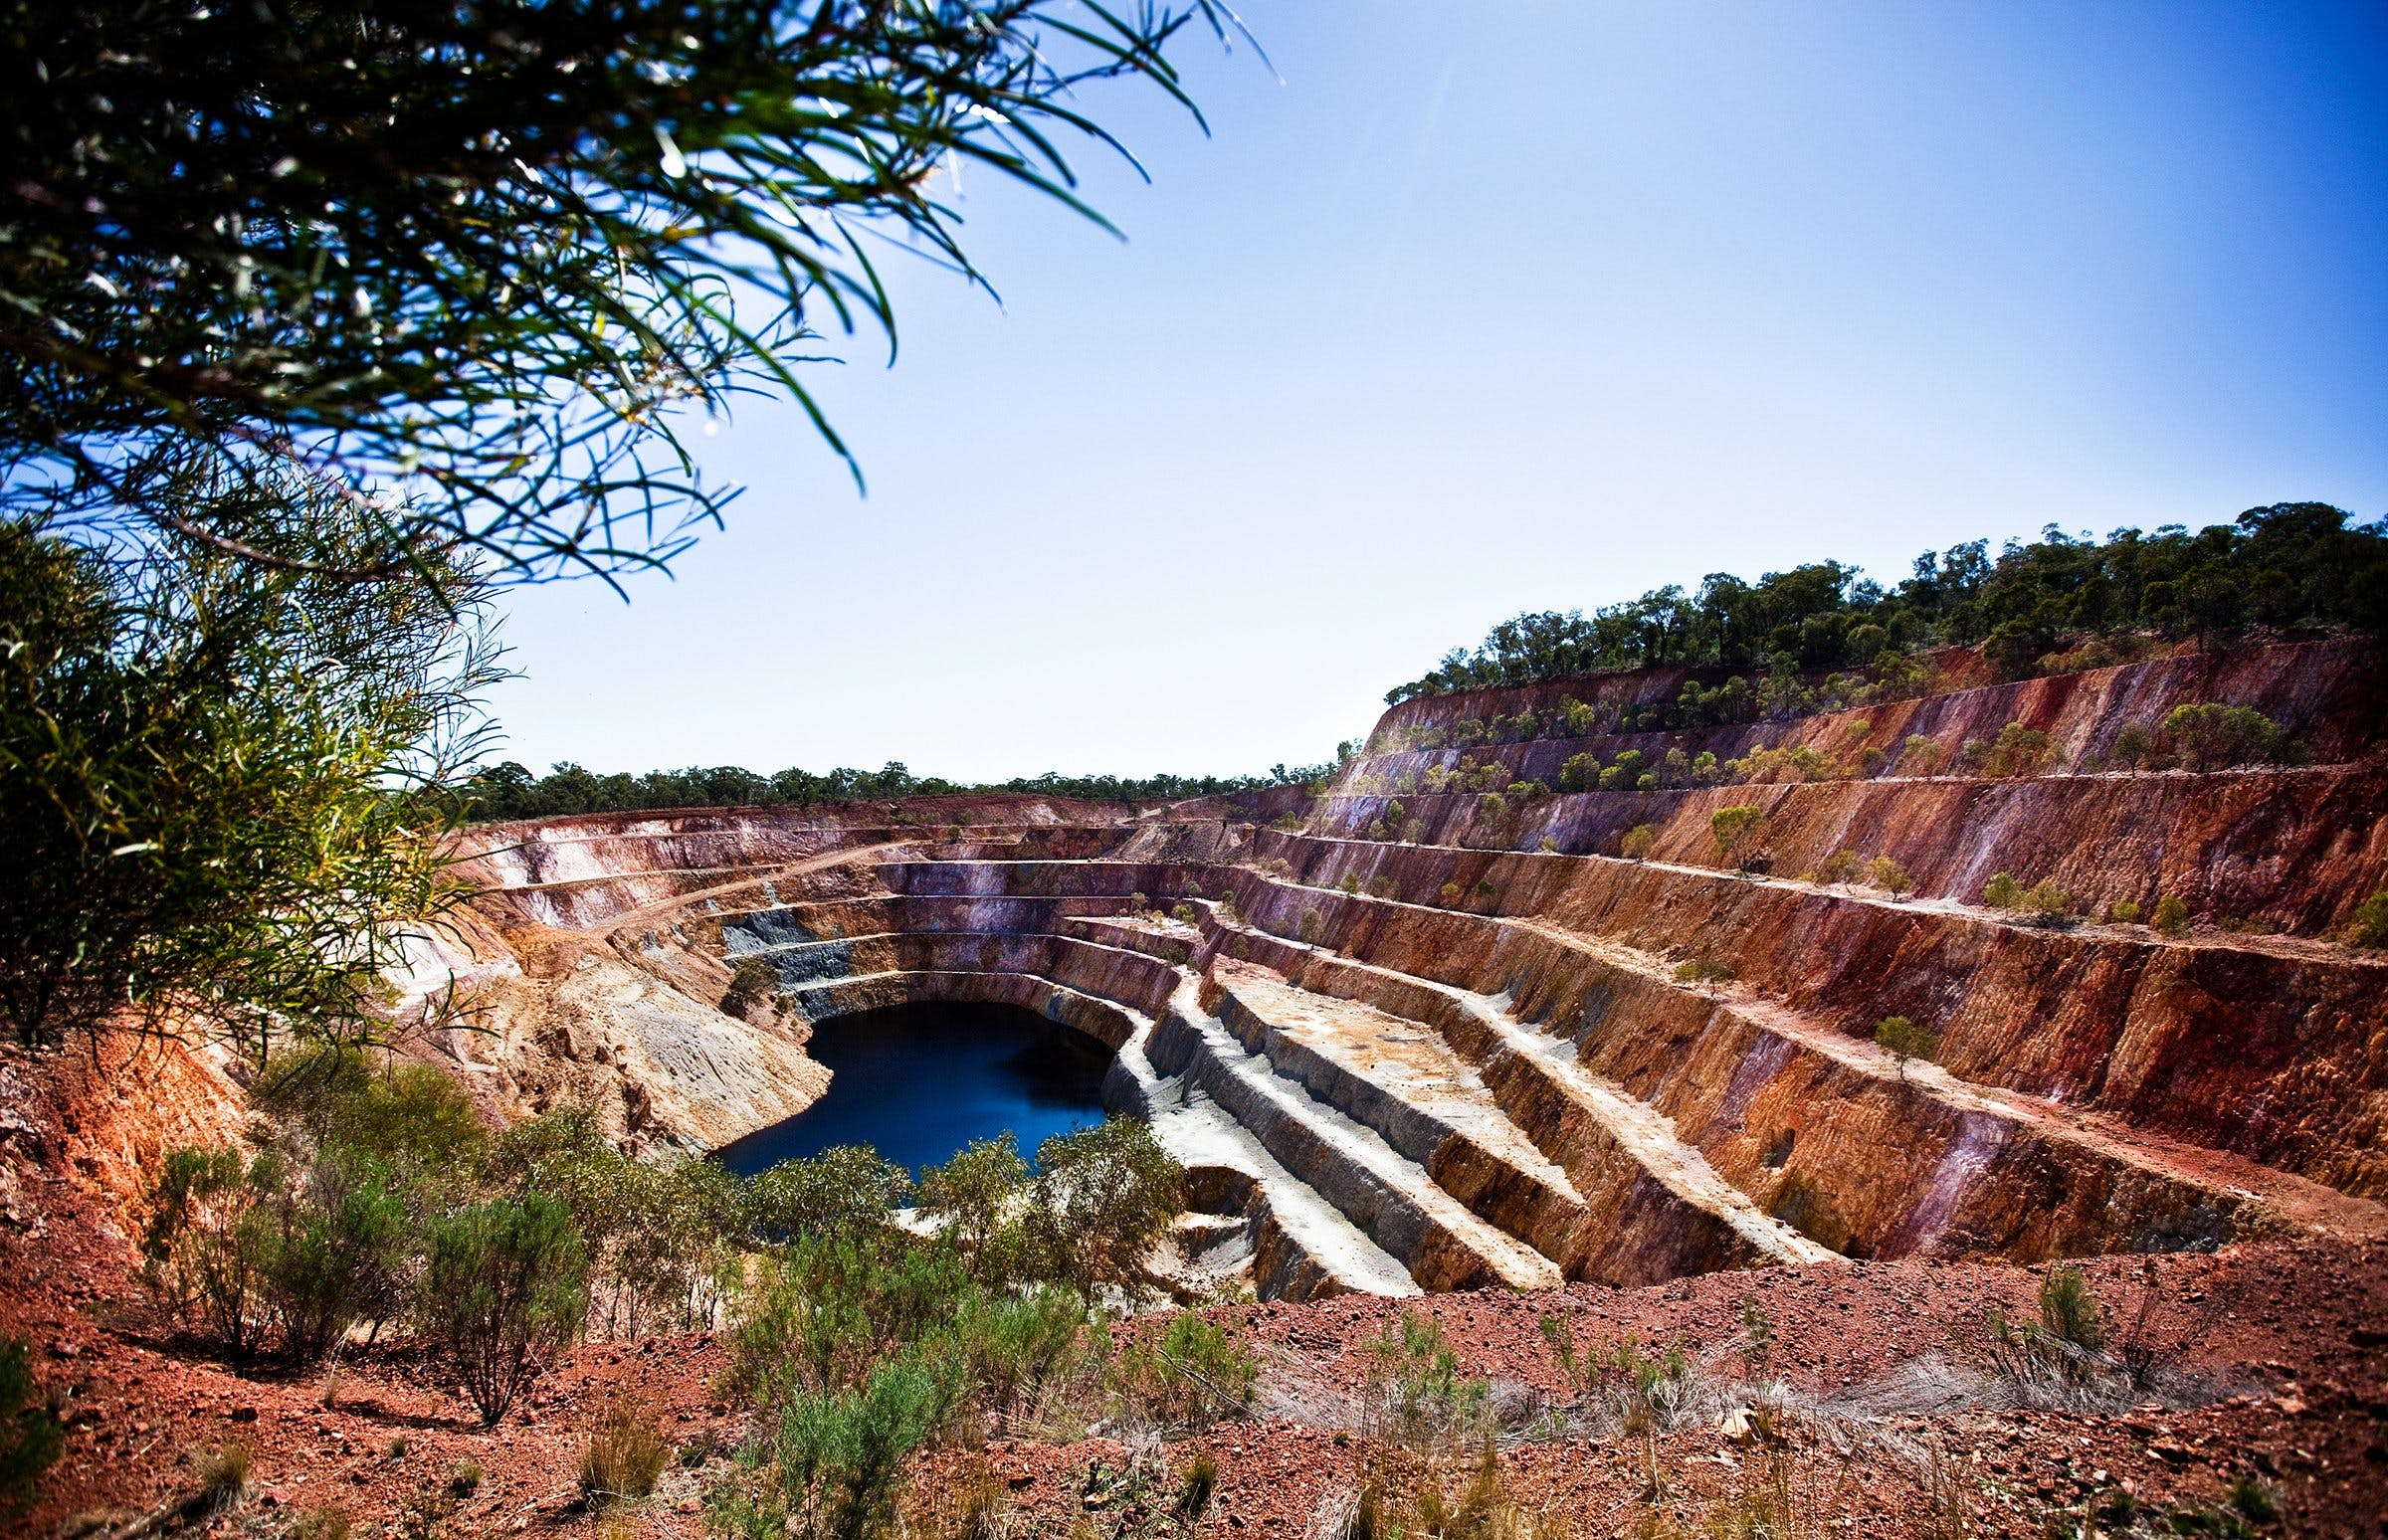 Peak Hill Open Gold Mine - Tourism Brisbane